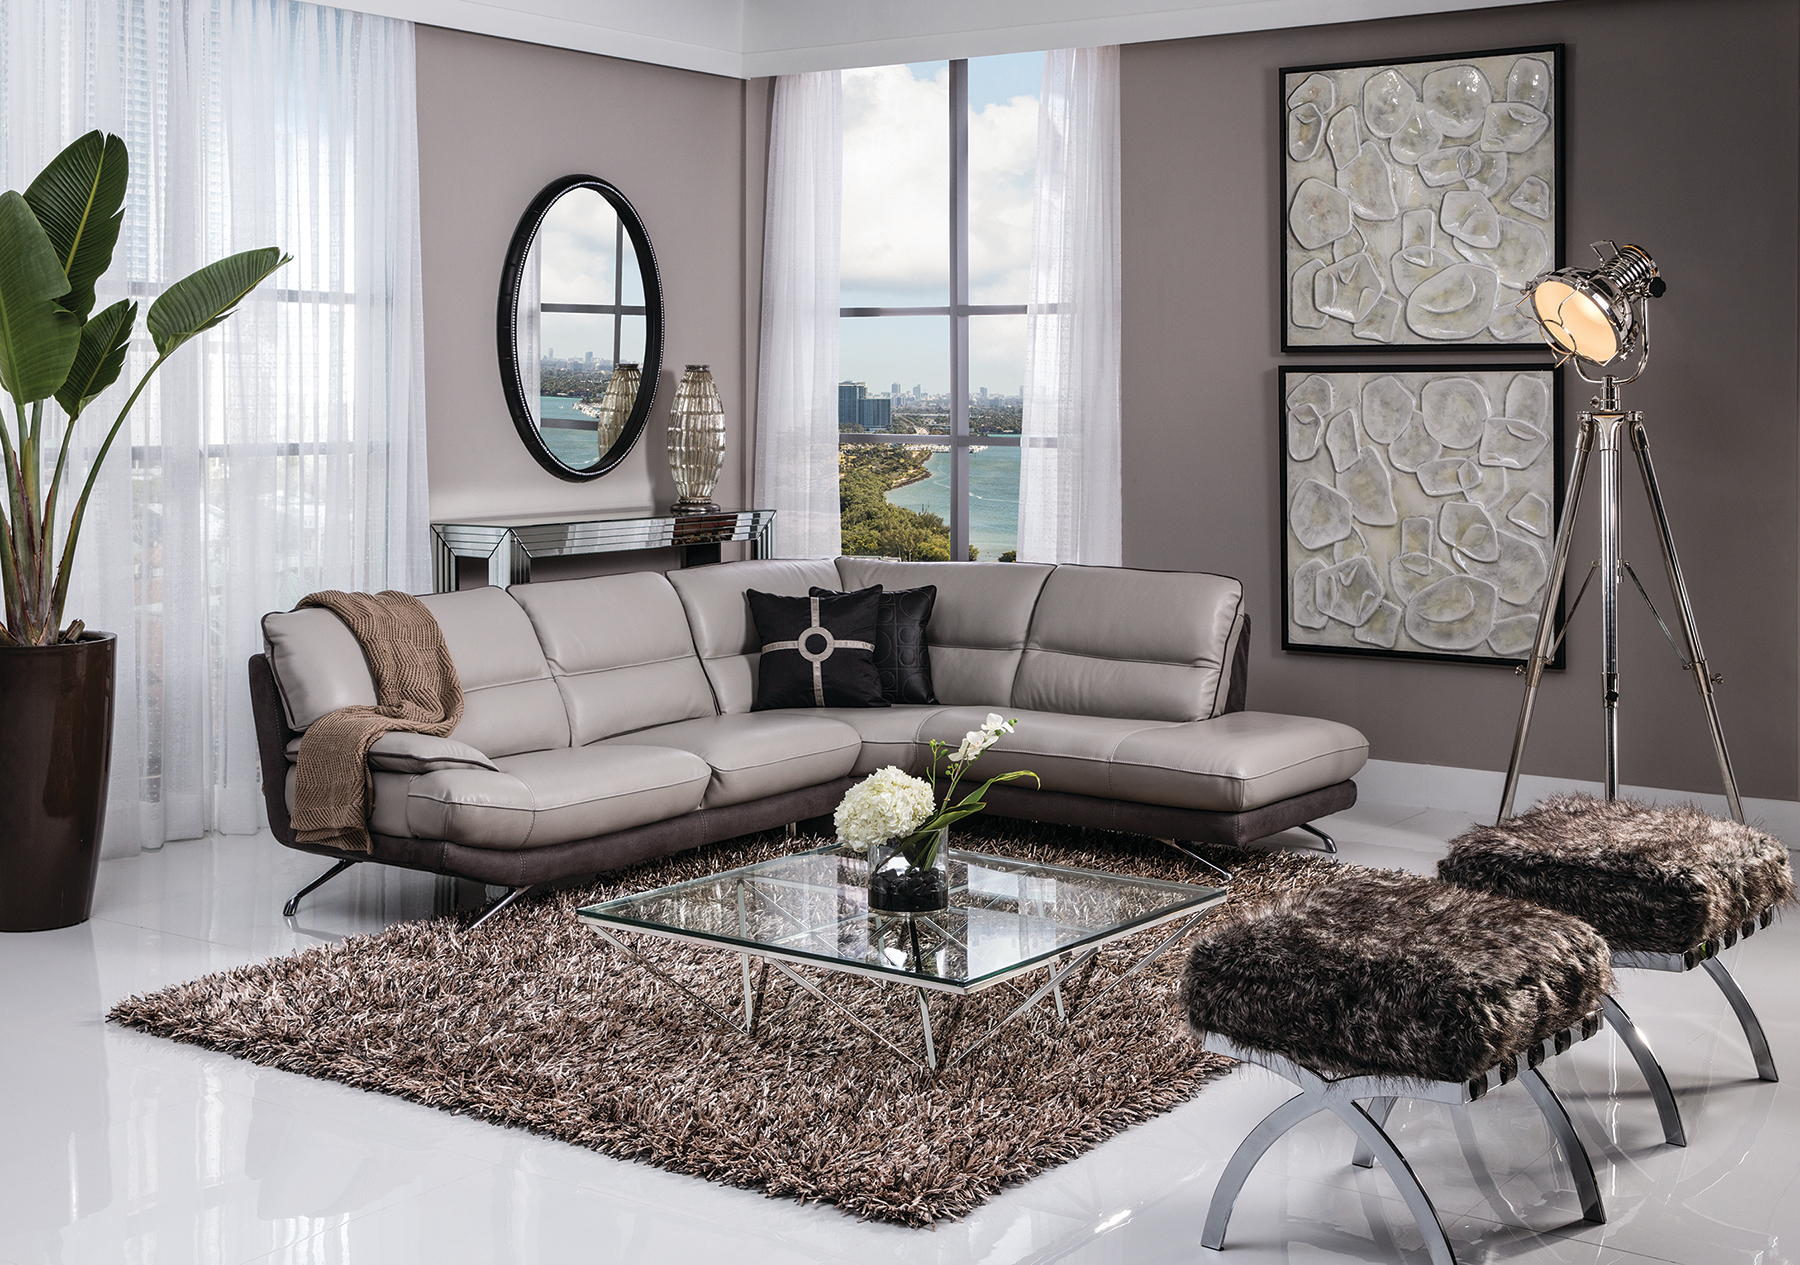 el dorado furniture coconut creek boulevard in coconut creek fl whitepages